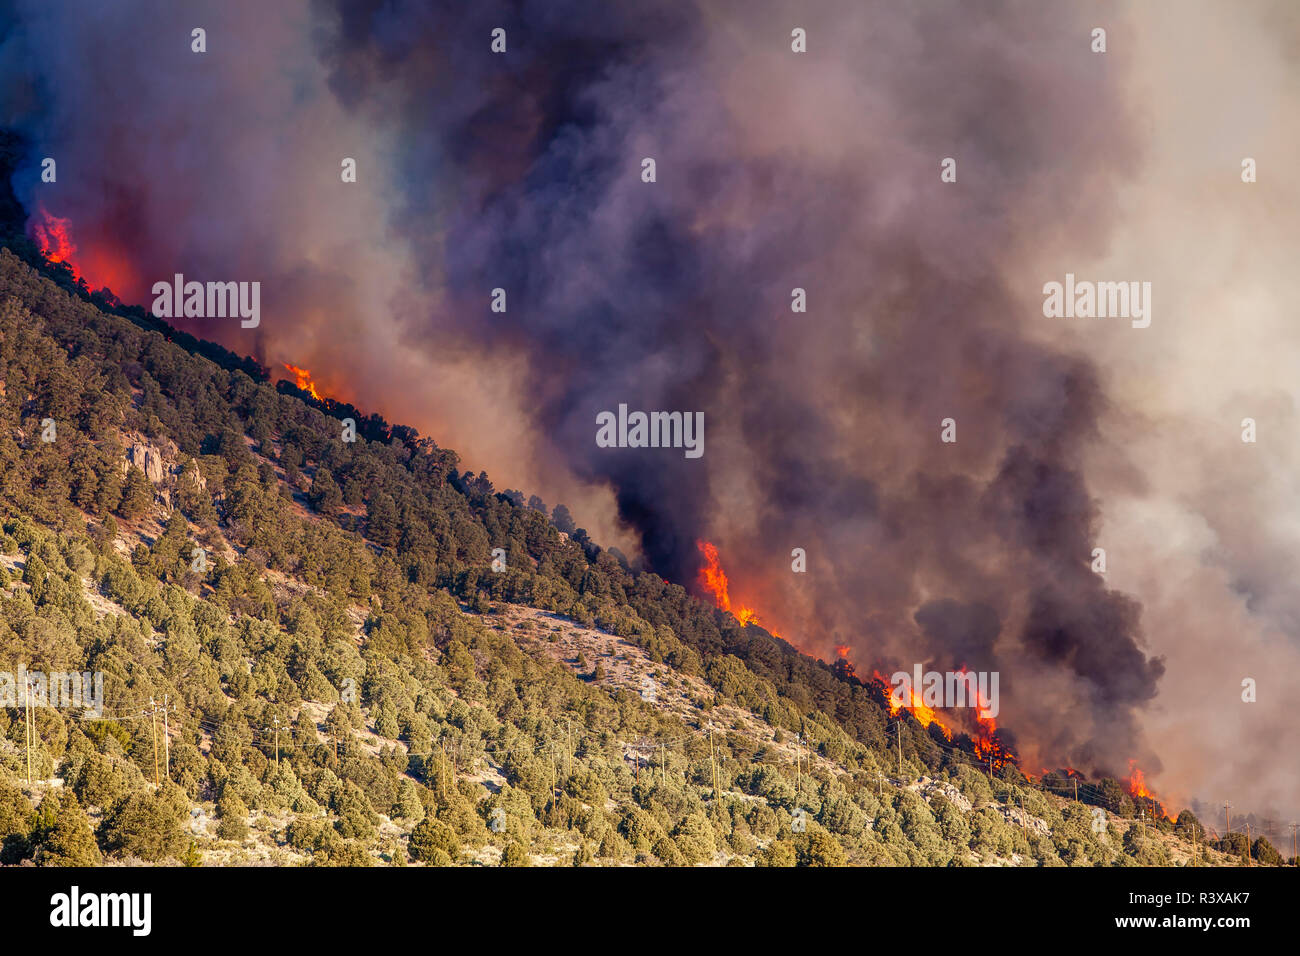 USA, California, Lee Vining. Cal Fire at work on the marina wildfire - Stock Image